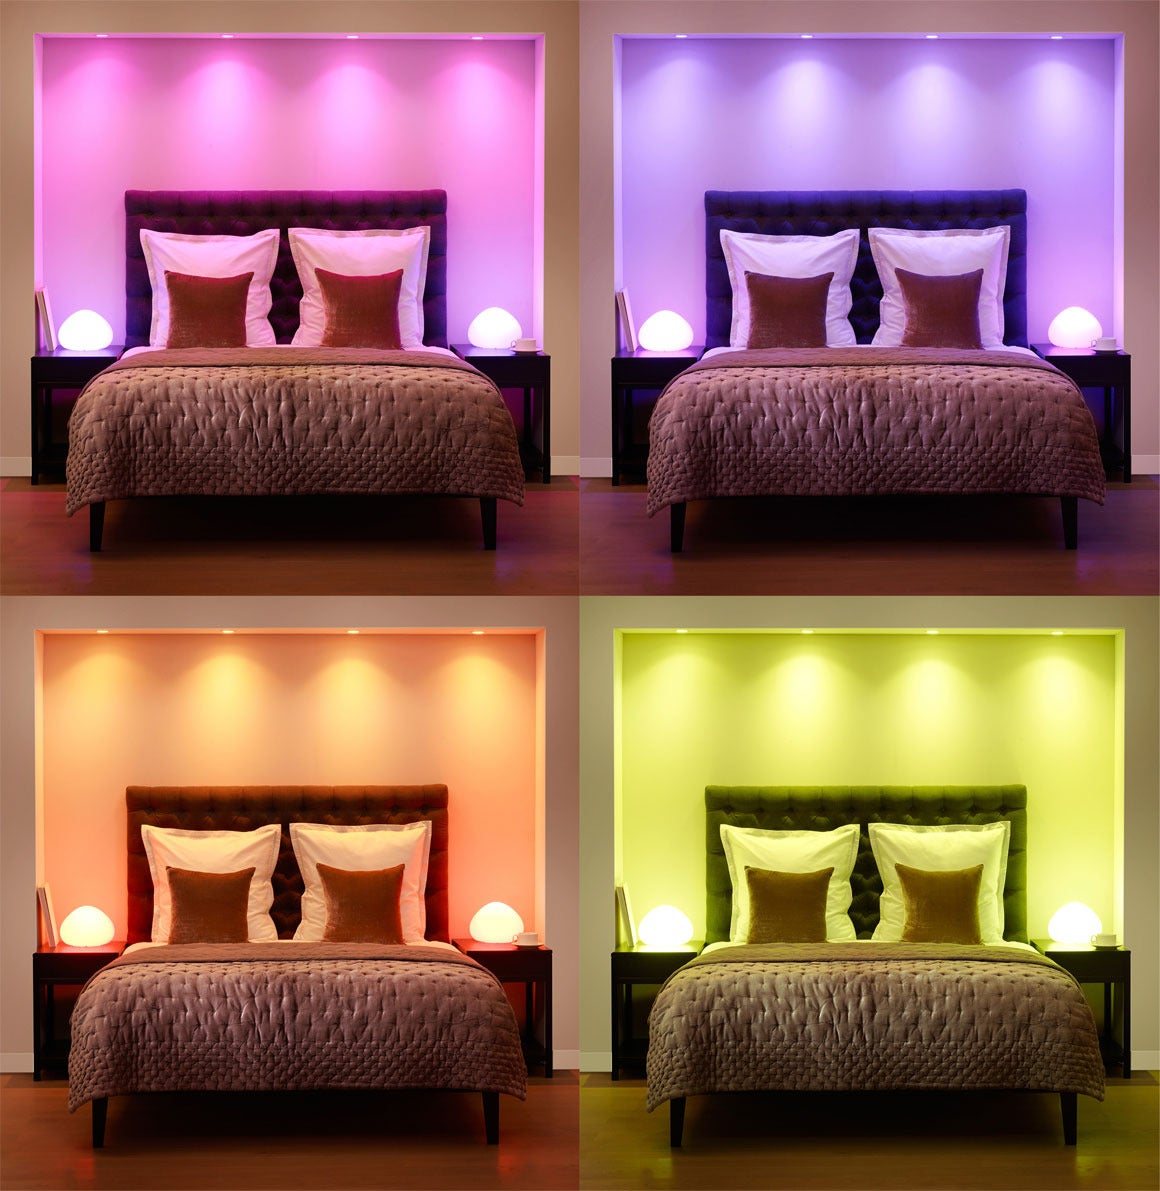 How to optimize your home lighting design based on color for Home lighting design